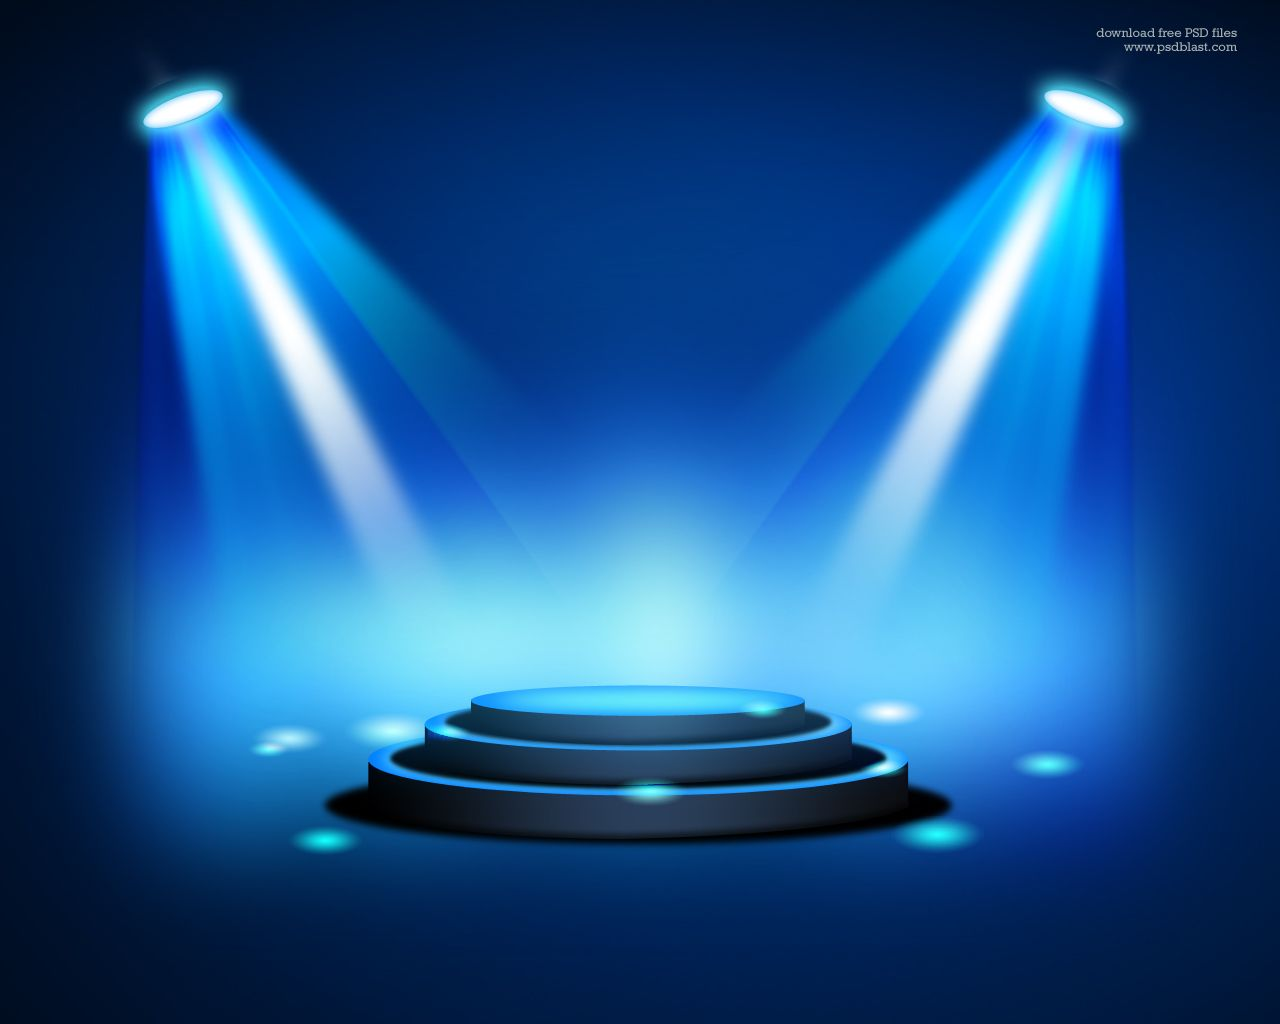 Stage Lighting Background With Spot Light Effects Psd